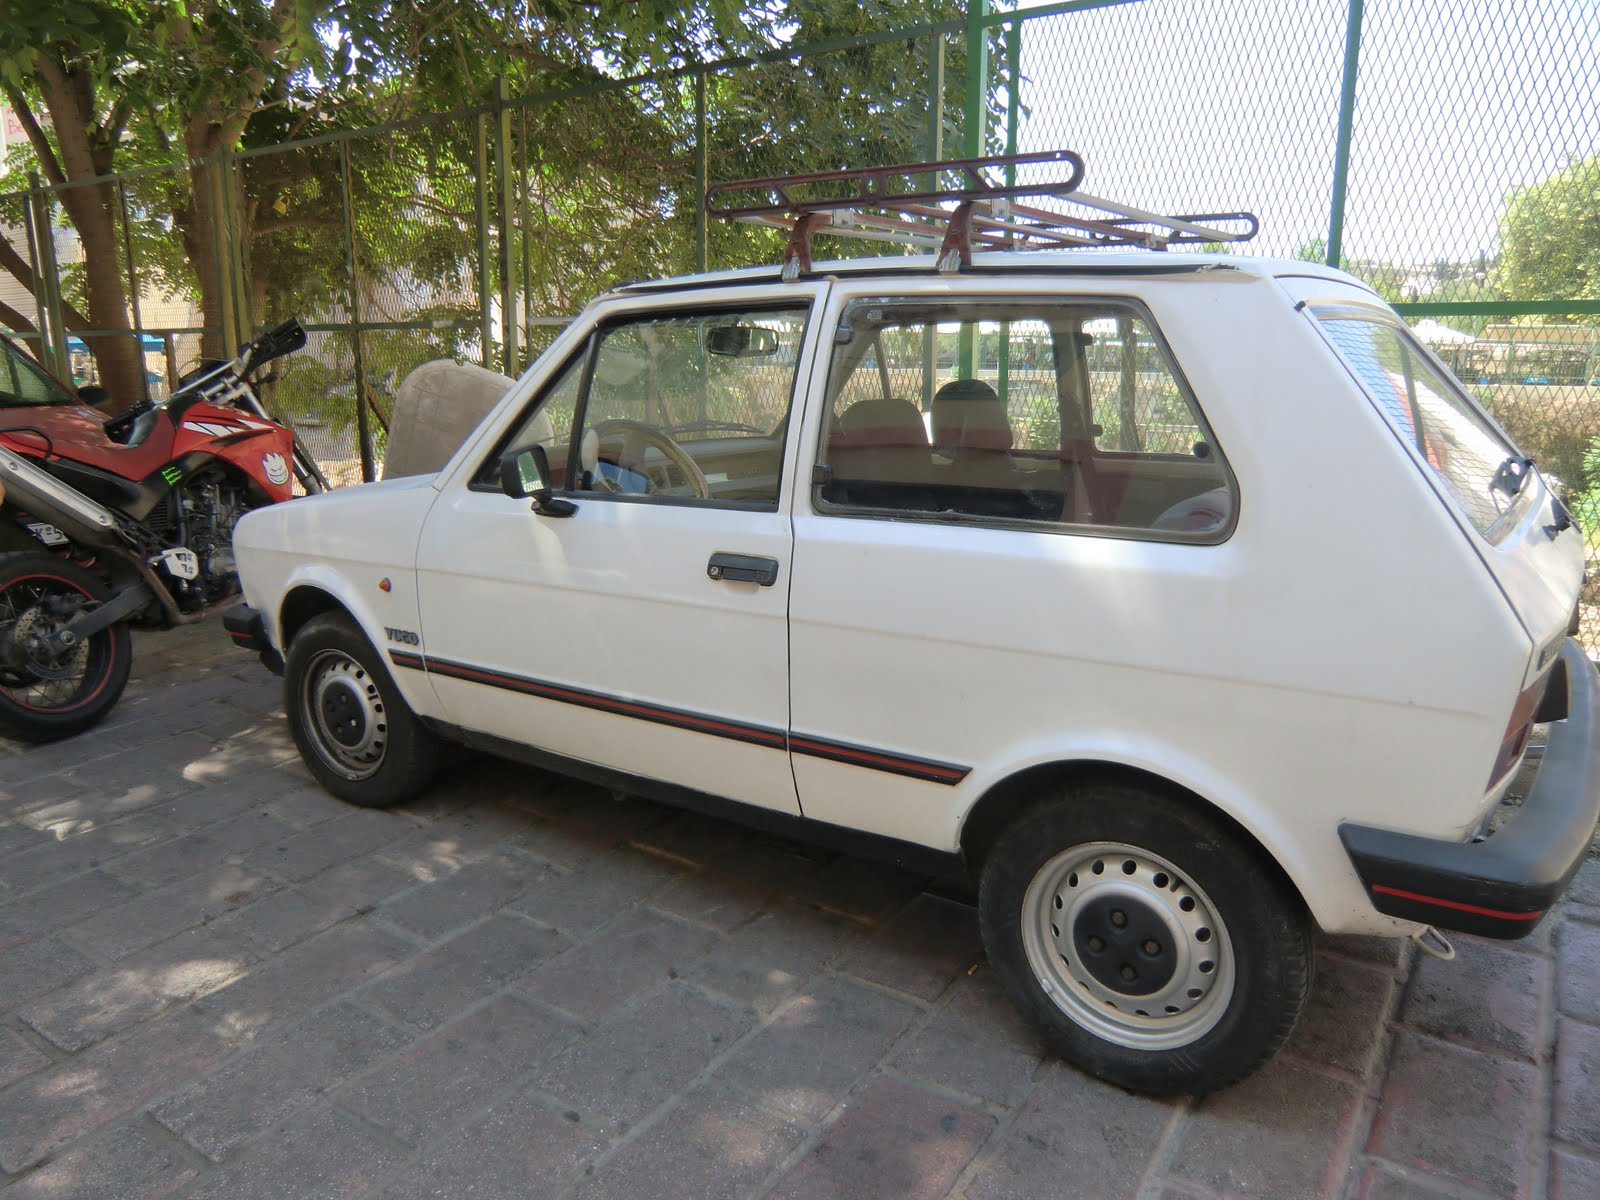 Tamerlane's Thoughts: Carspotting: Greece edition-- Yugo, Fiat, Land